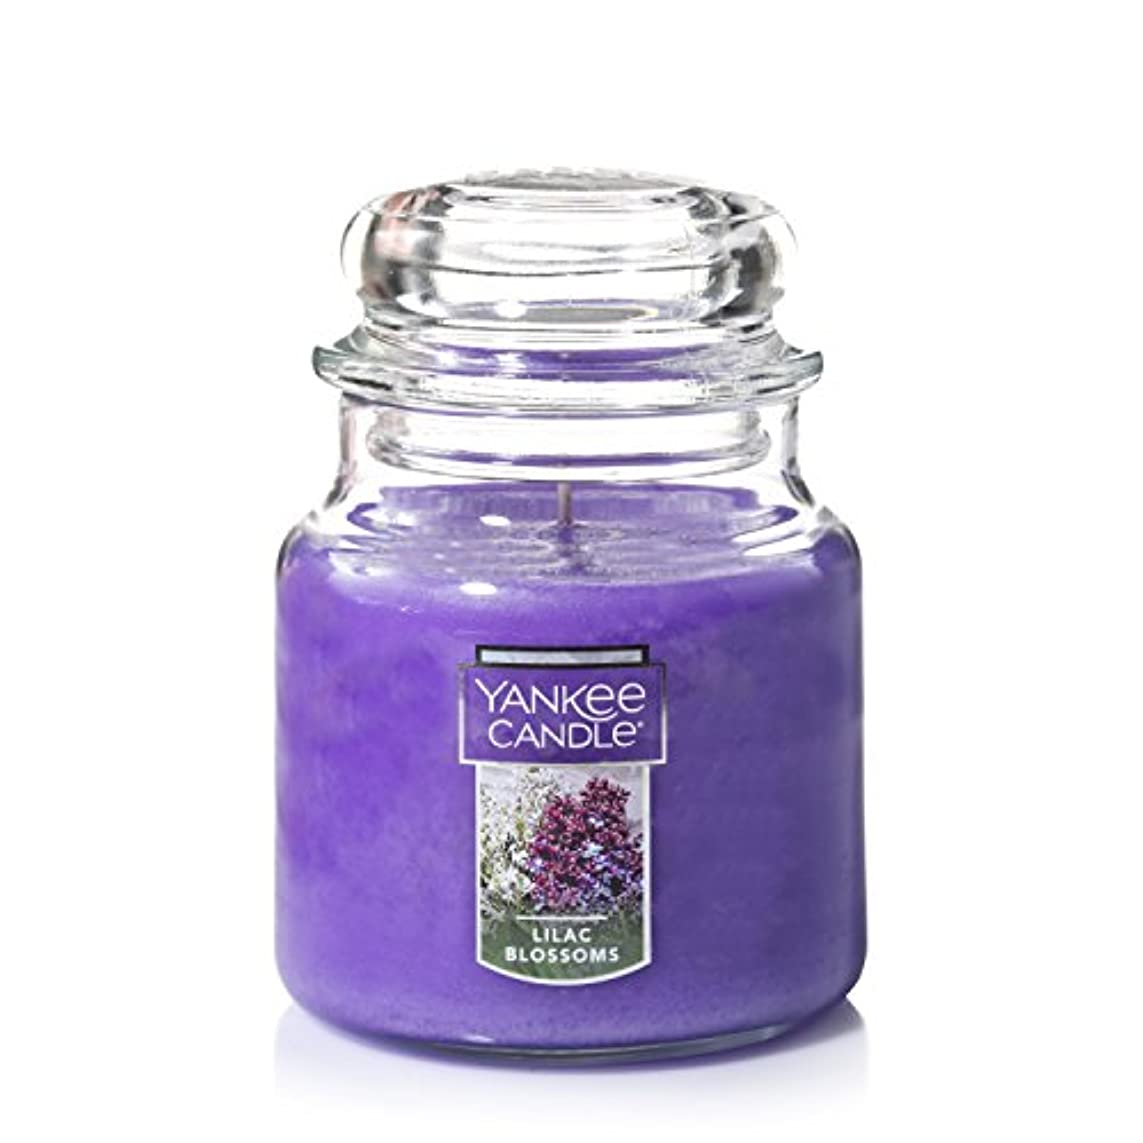 Yankee CandleライラックBlossoms Medium Jar 14.5oz Candle One パープル 1006996